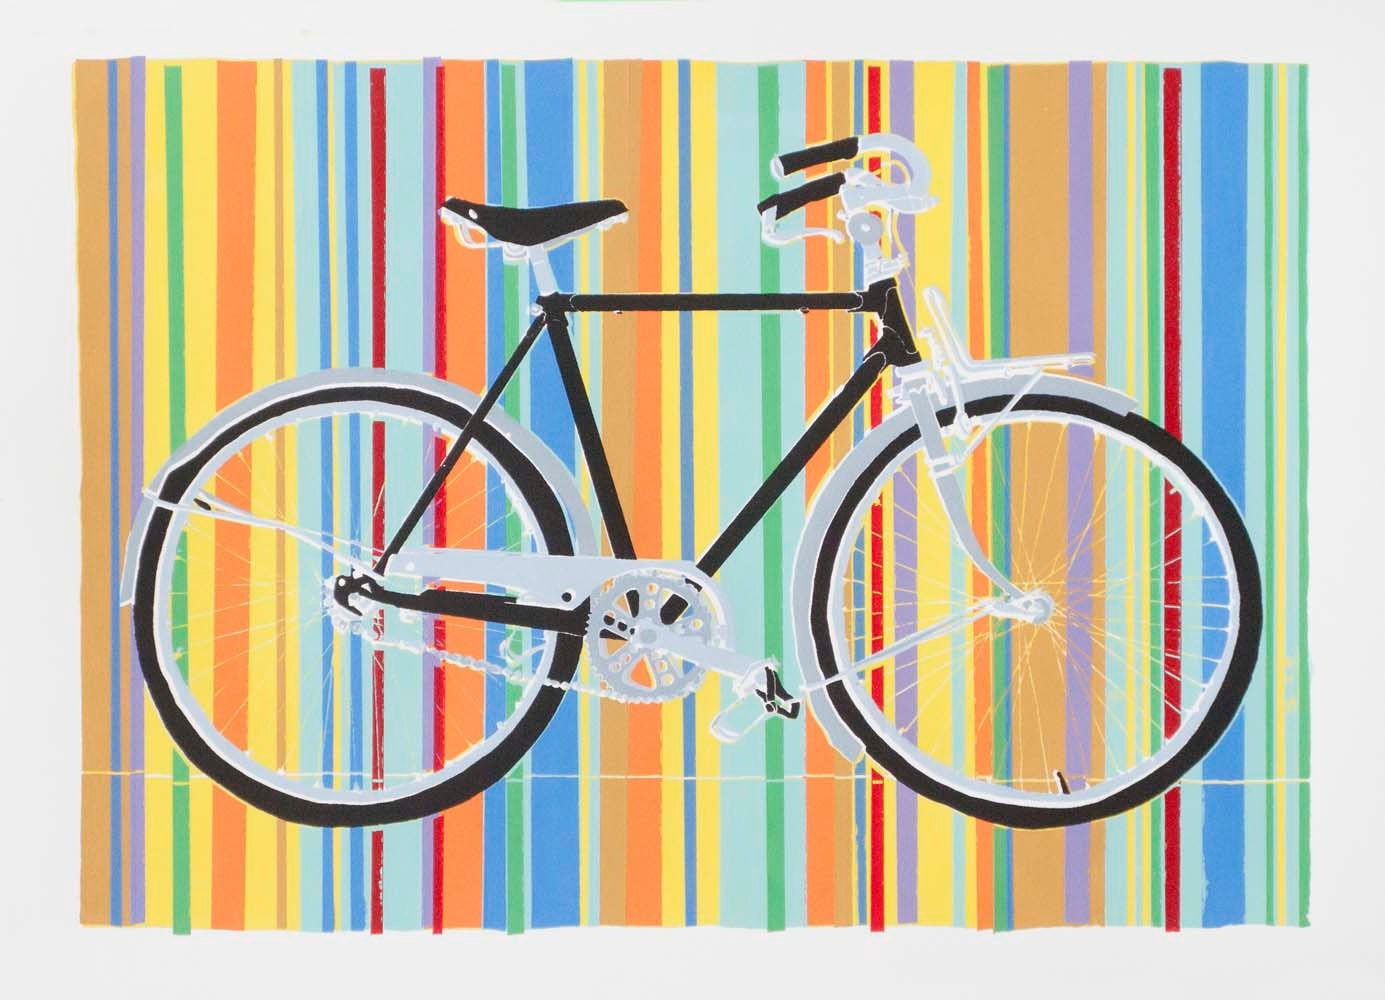 Prints By Deluxe: Bicycle Art Print Ryan's Freedom Deluxe 11